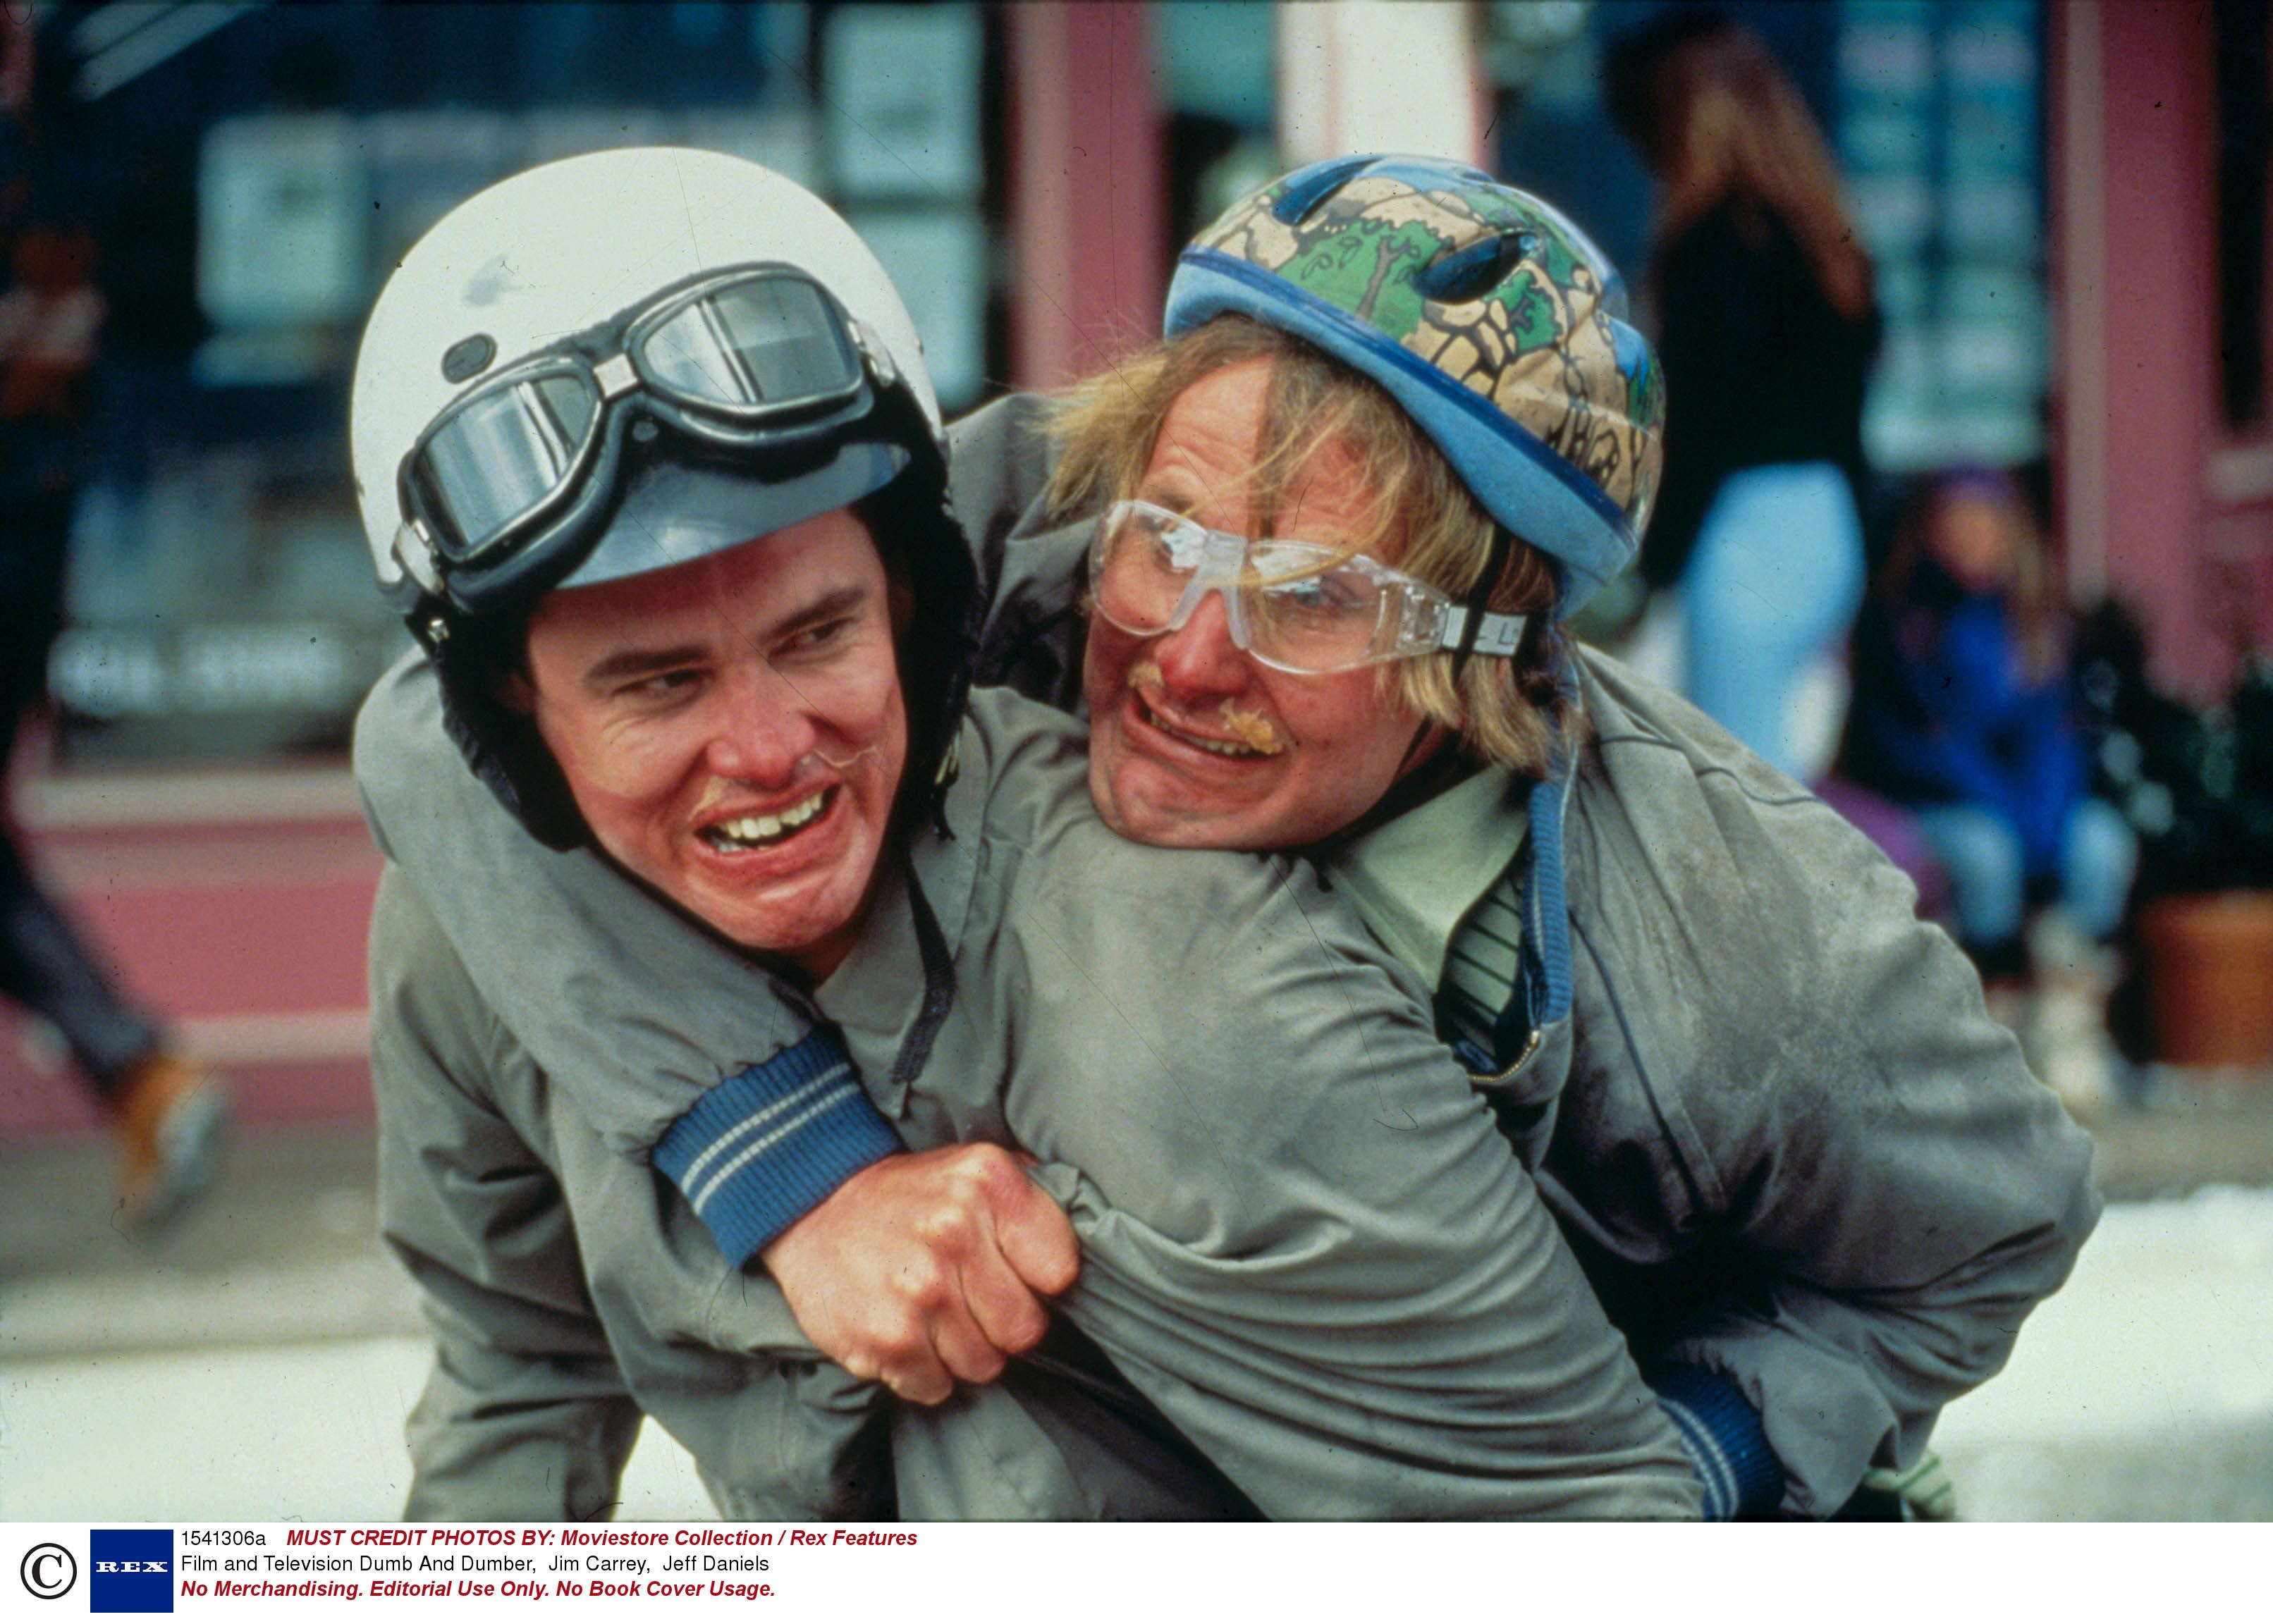 Re-Viewed: Dumb and Dumber